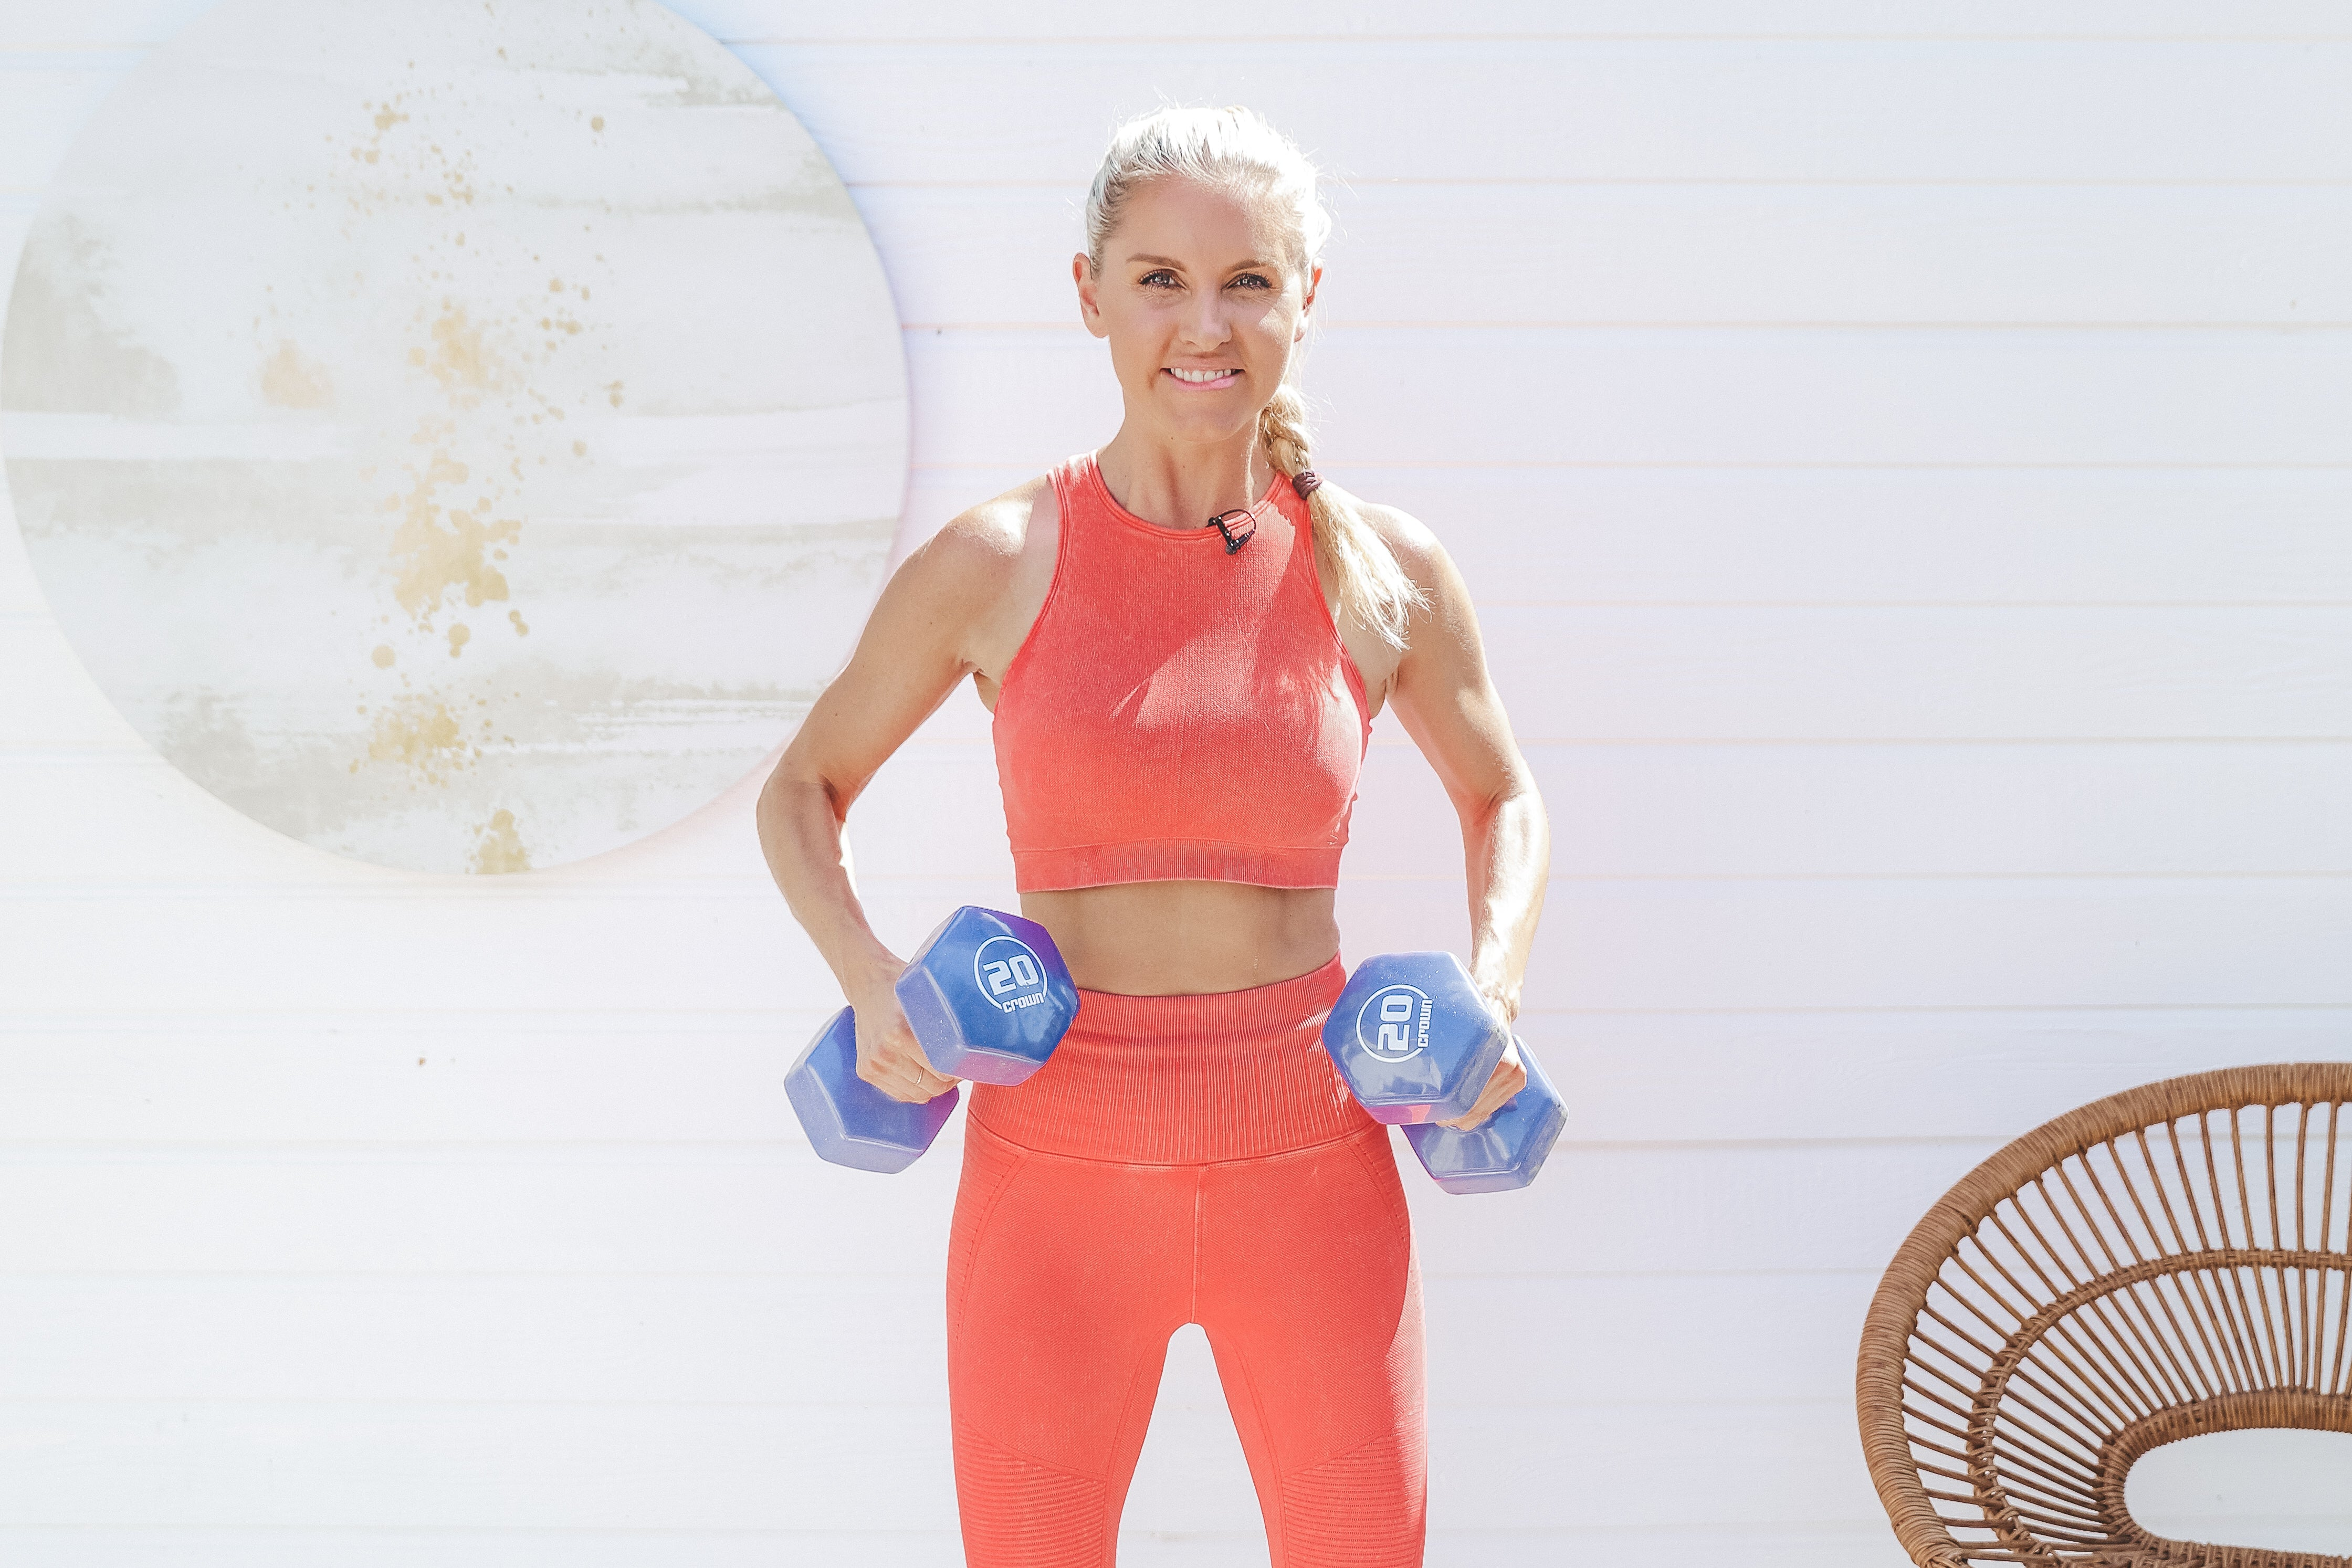 Get Back At It FULL BODY - head to toe toned!